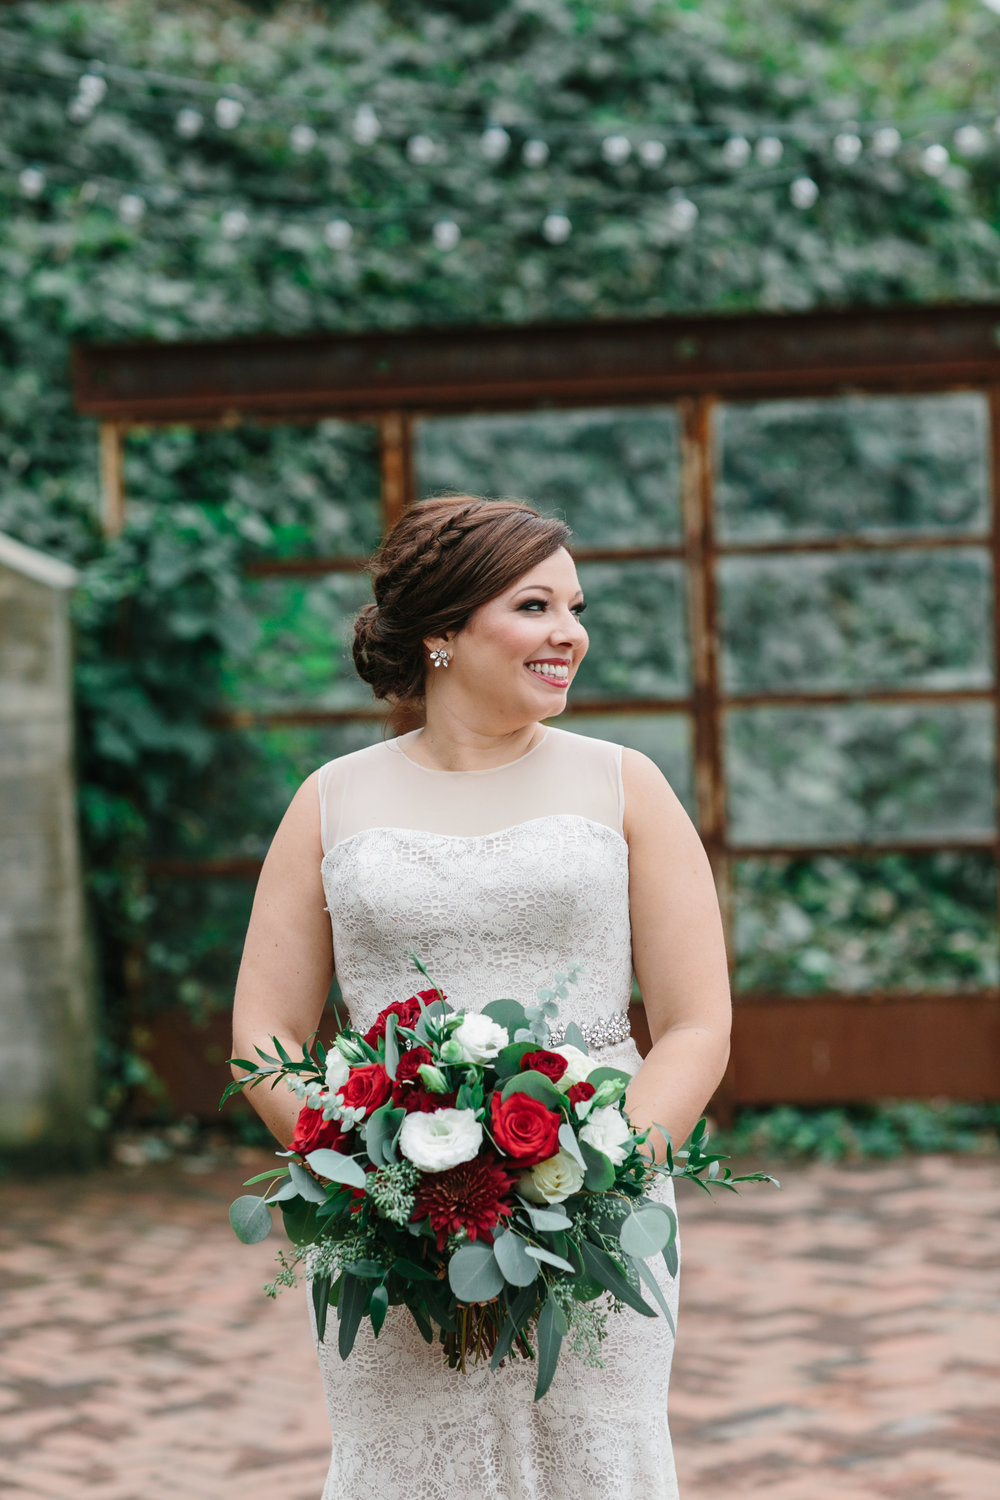 Jessica_Bryan_Wedding_Standard_Knoxville_Abigail_Malone_Photography-207.jpg